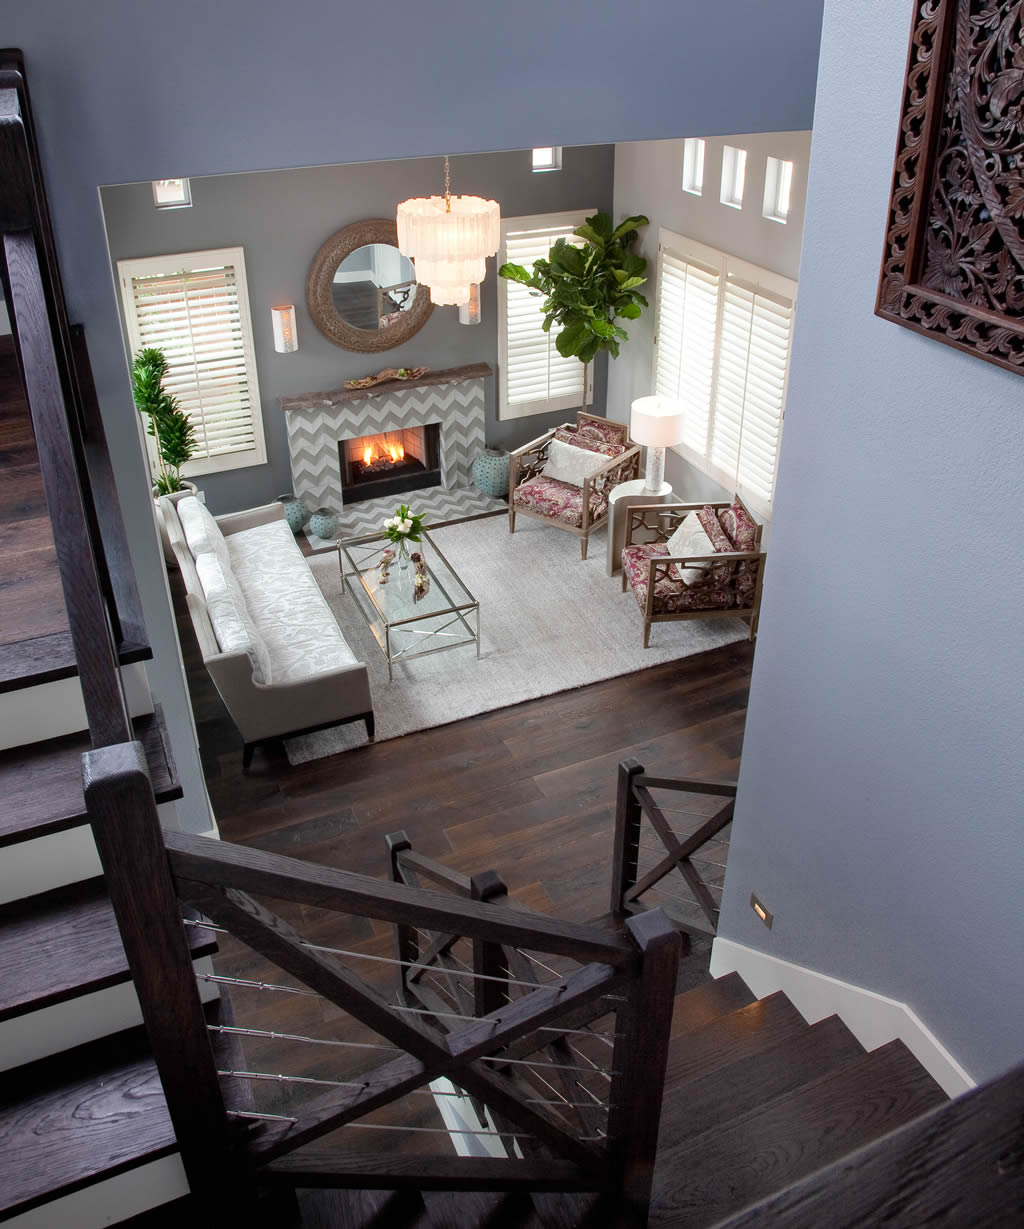 Carlsbad Interior Design - View Down Stairs